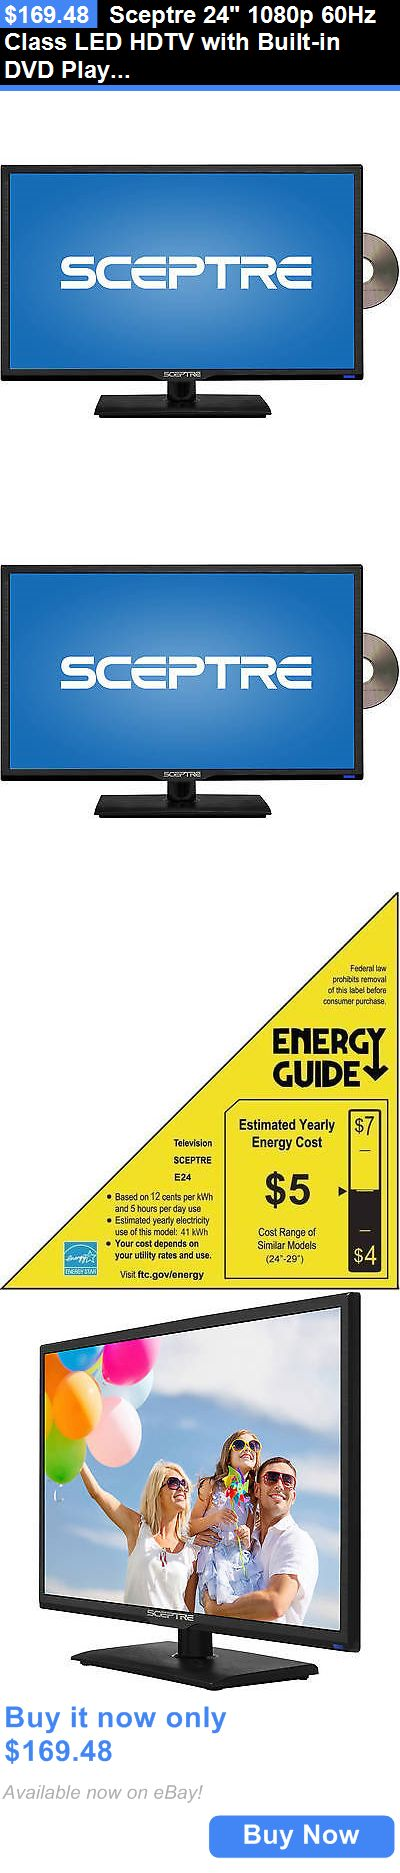 Televisions: Sceptre 24 1080P 60Hz Class Led Hdtv With Built-In Dvd Player Slim Flat Screen BUY IT NOW ONLY: $169.48